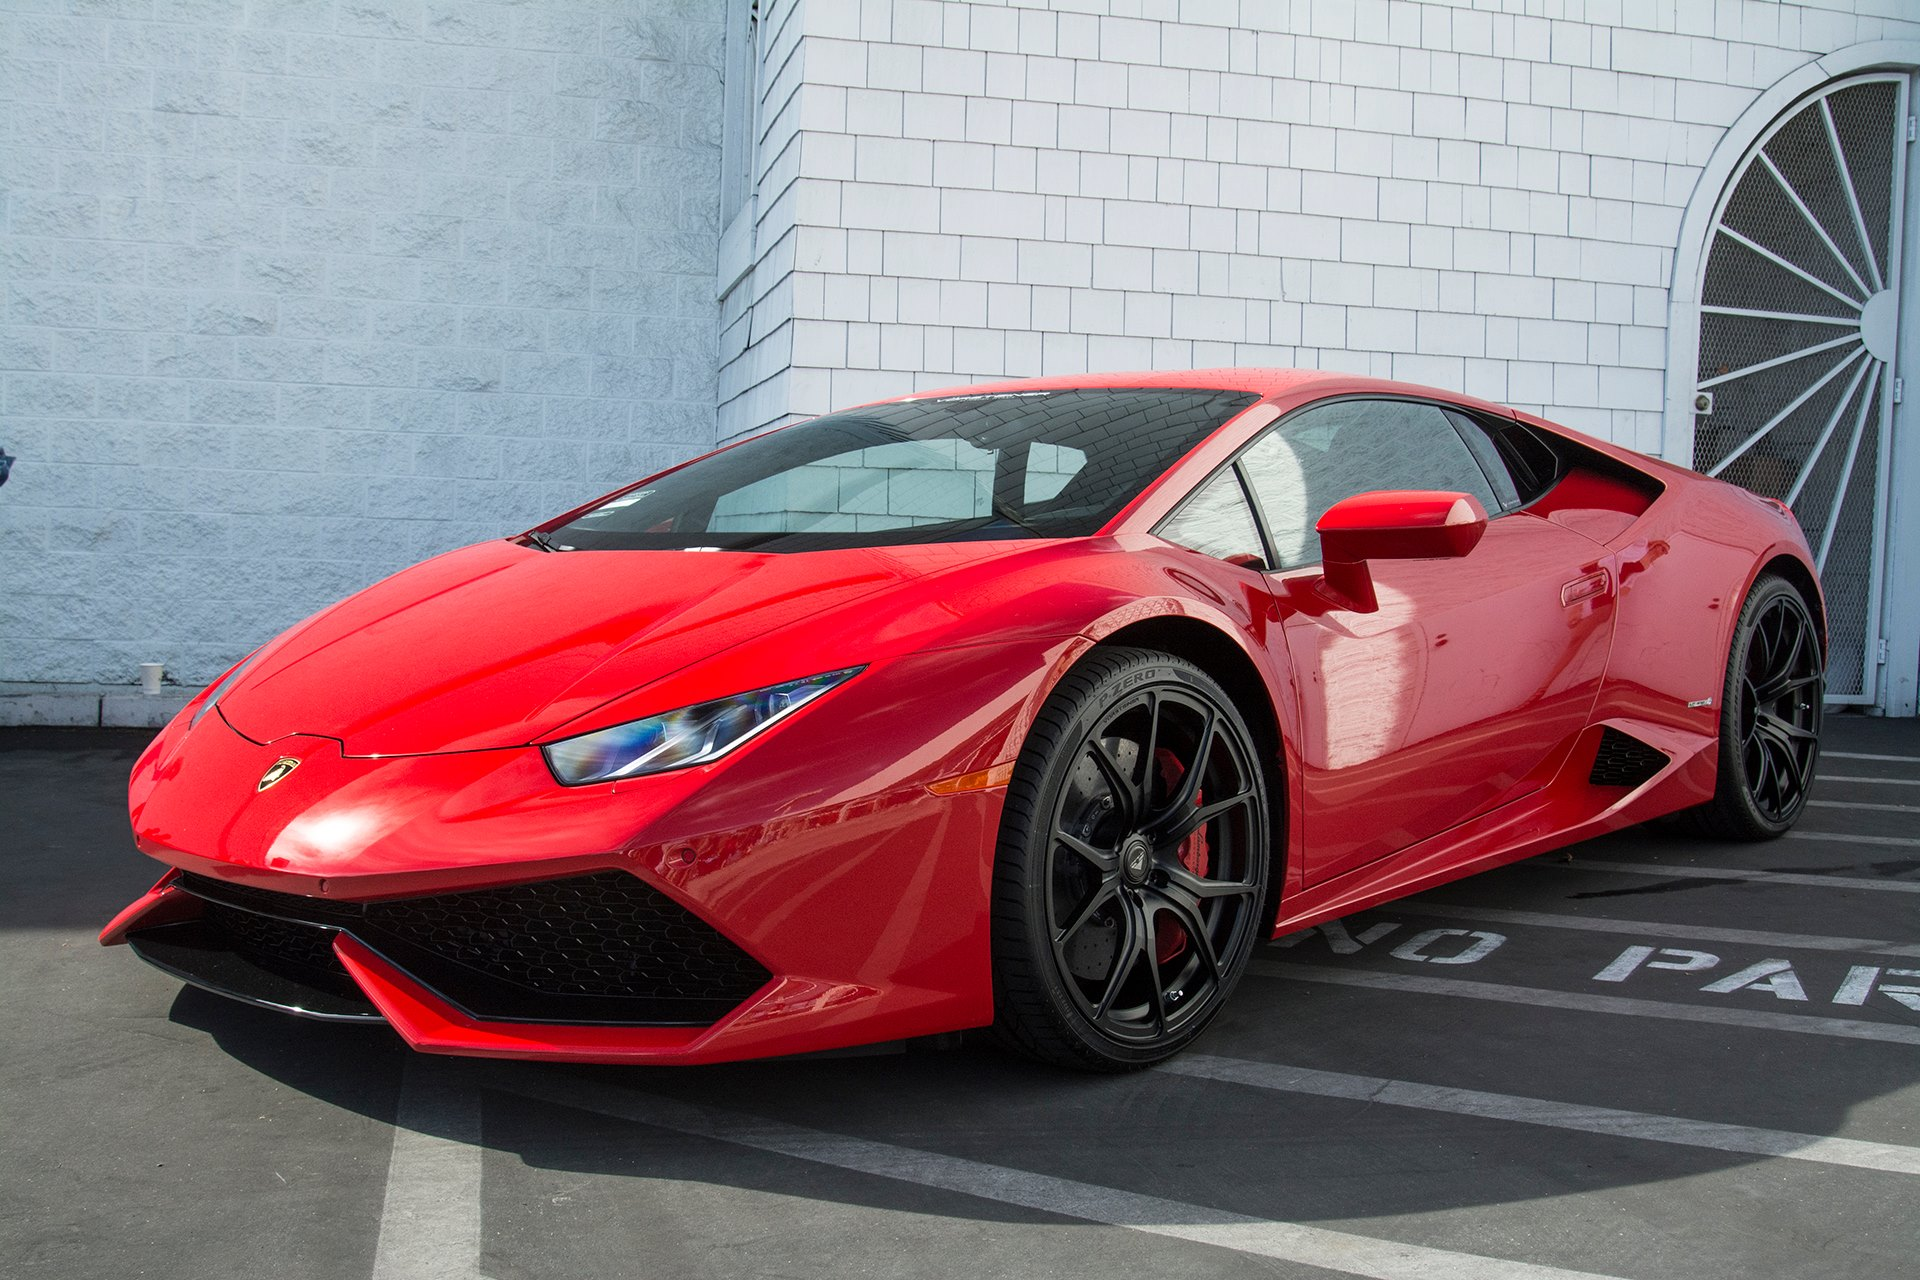 rosso2 Fabulous Lamborghini Huracan Need for Speed 2015 Cars Trend